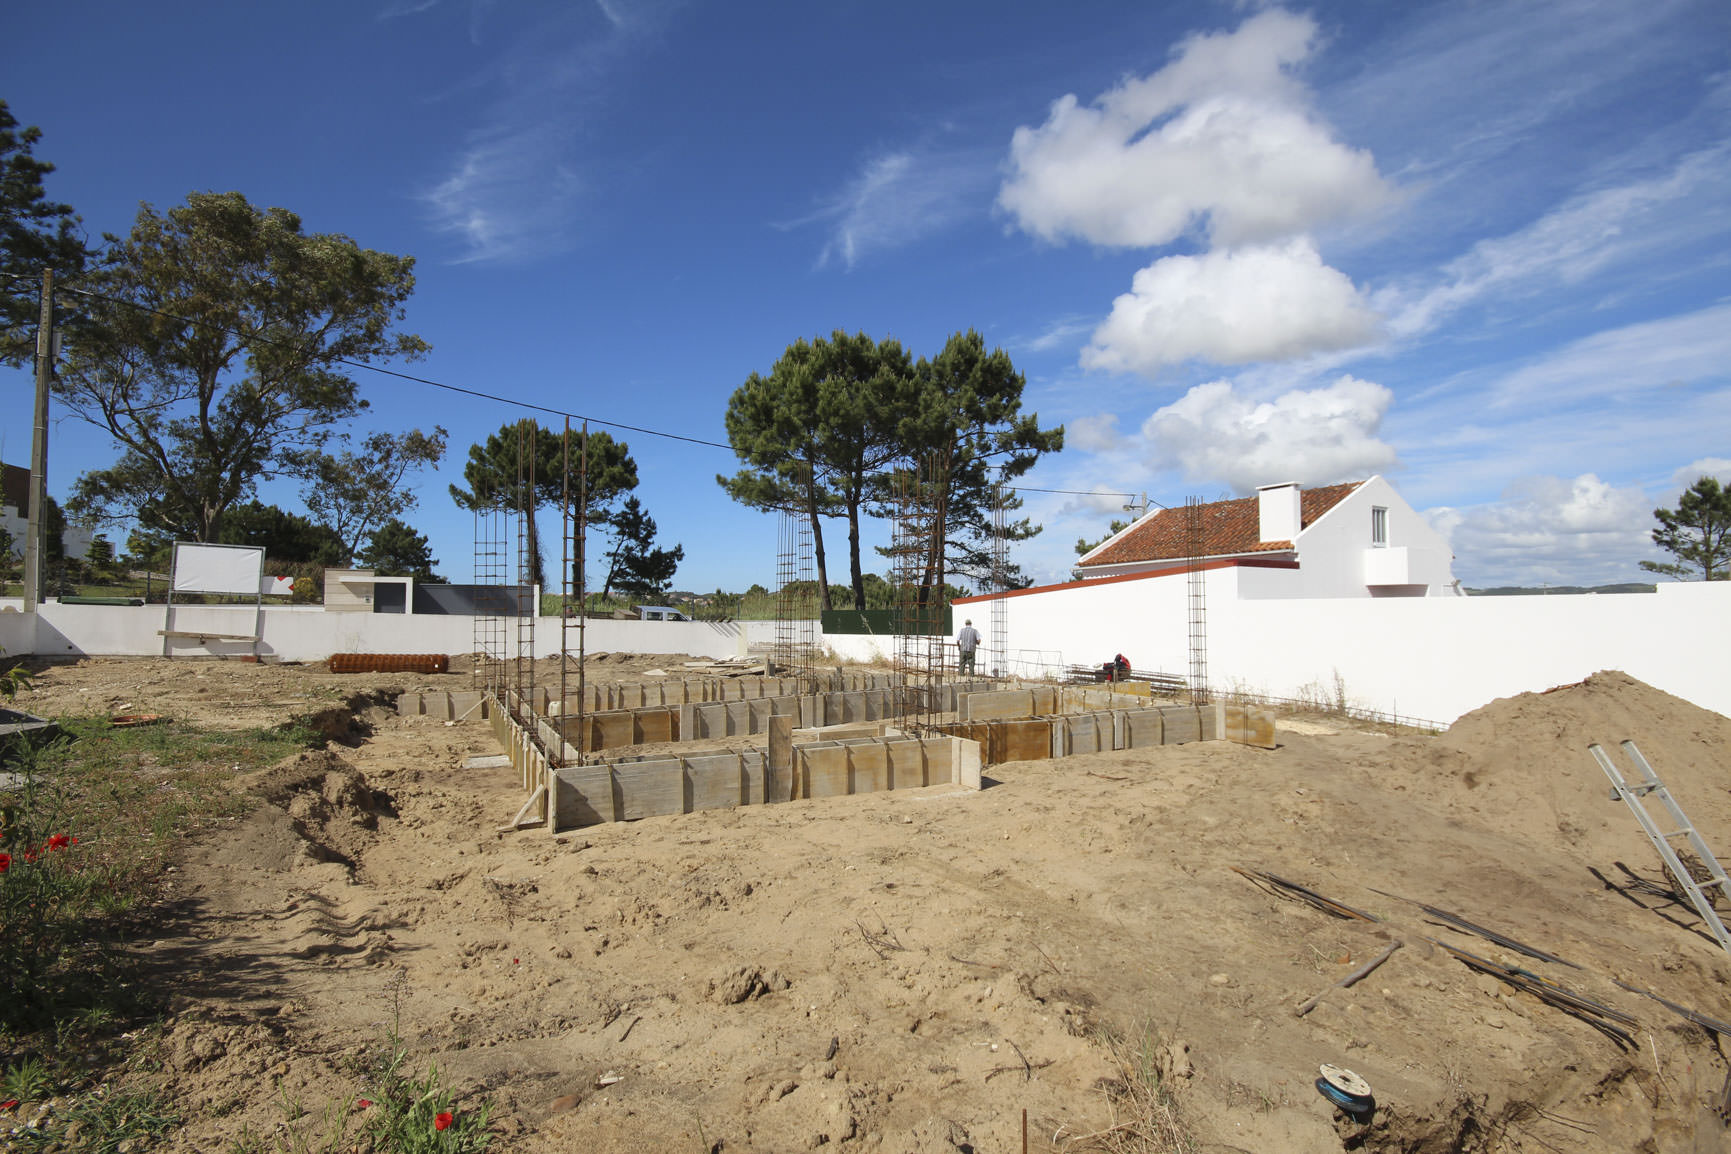 04-portugal-realty-silver-coast-property-for-sale-presprop-contsruction-new-build